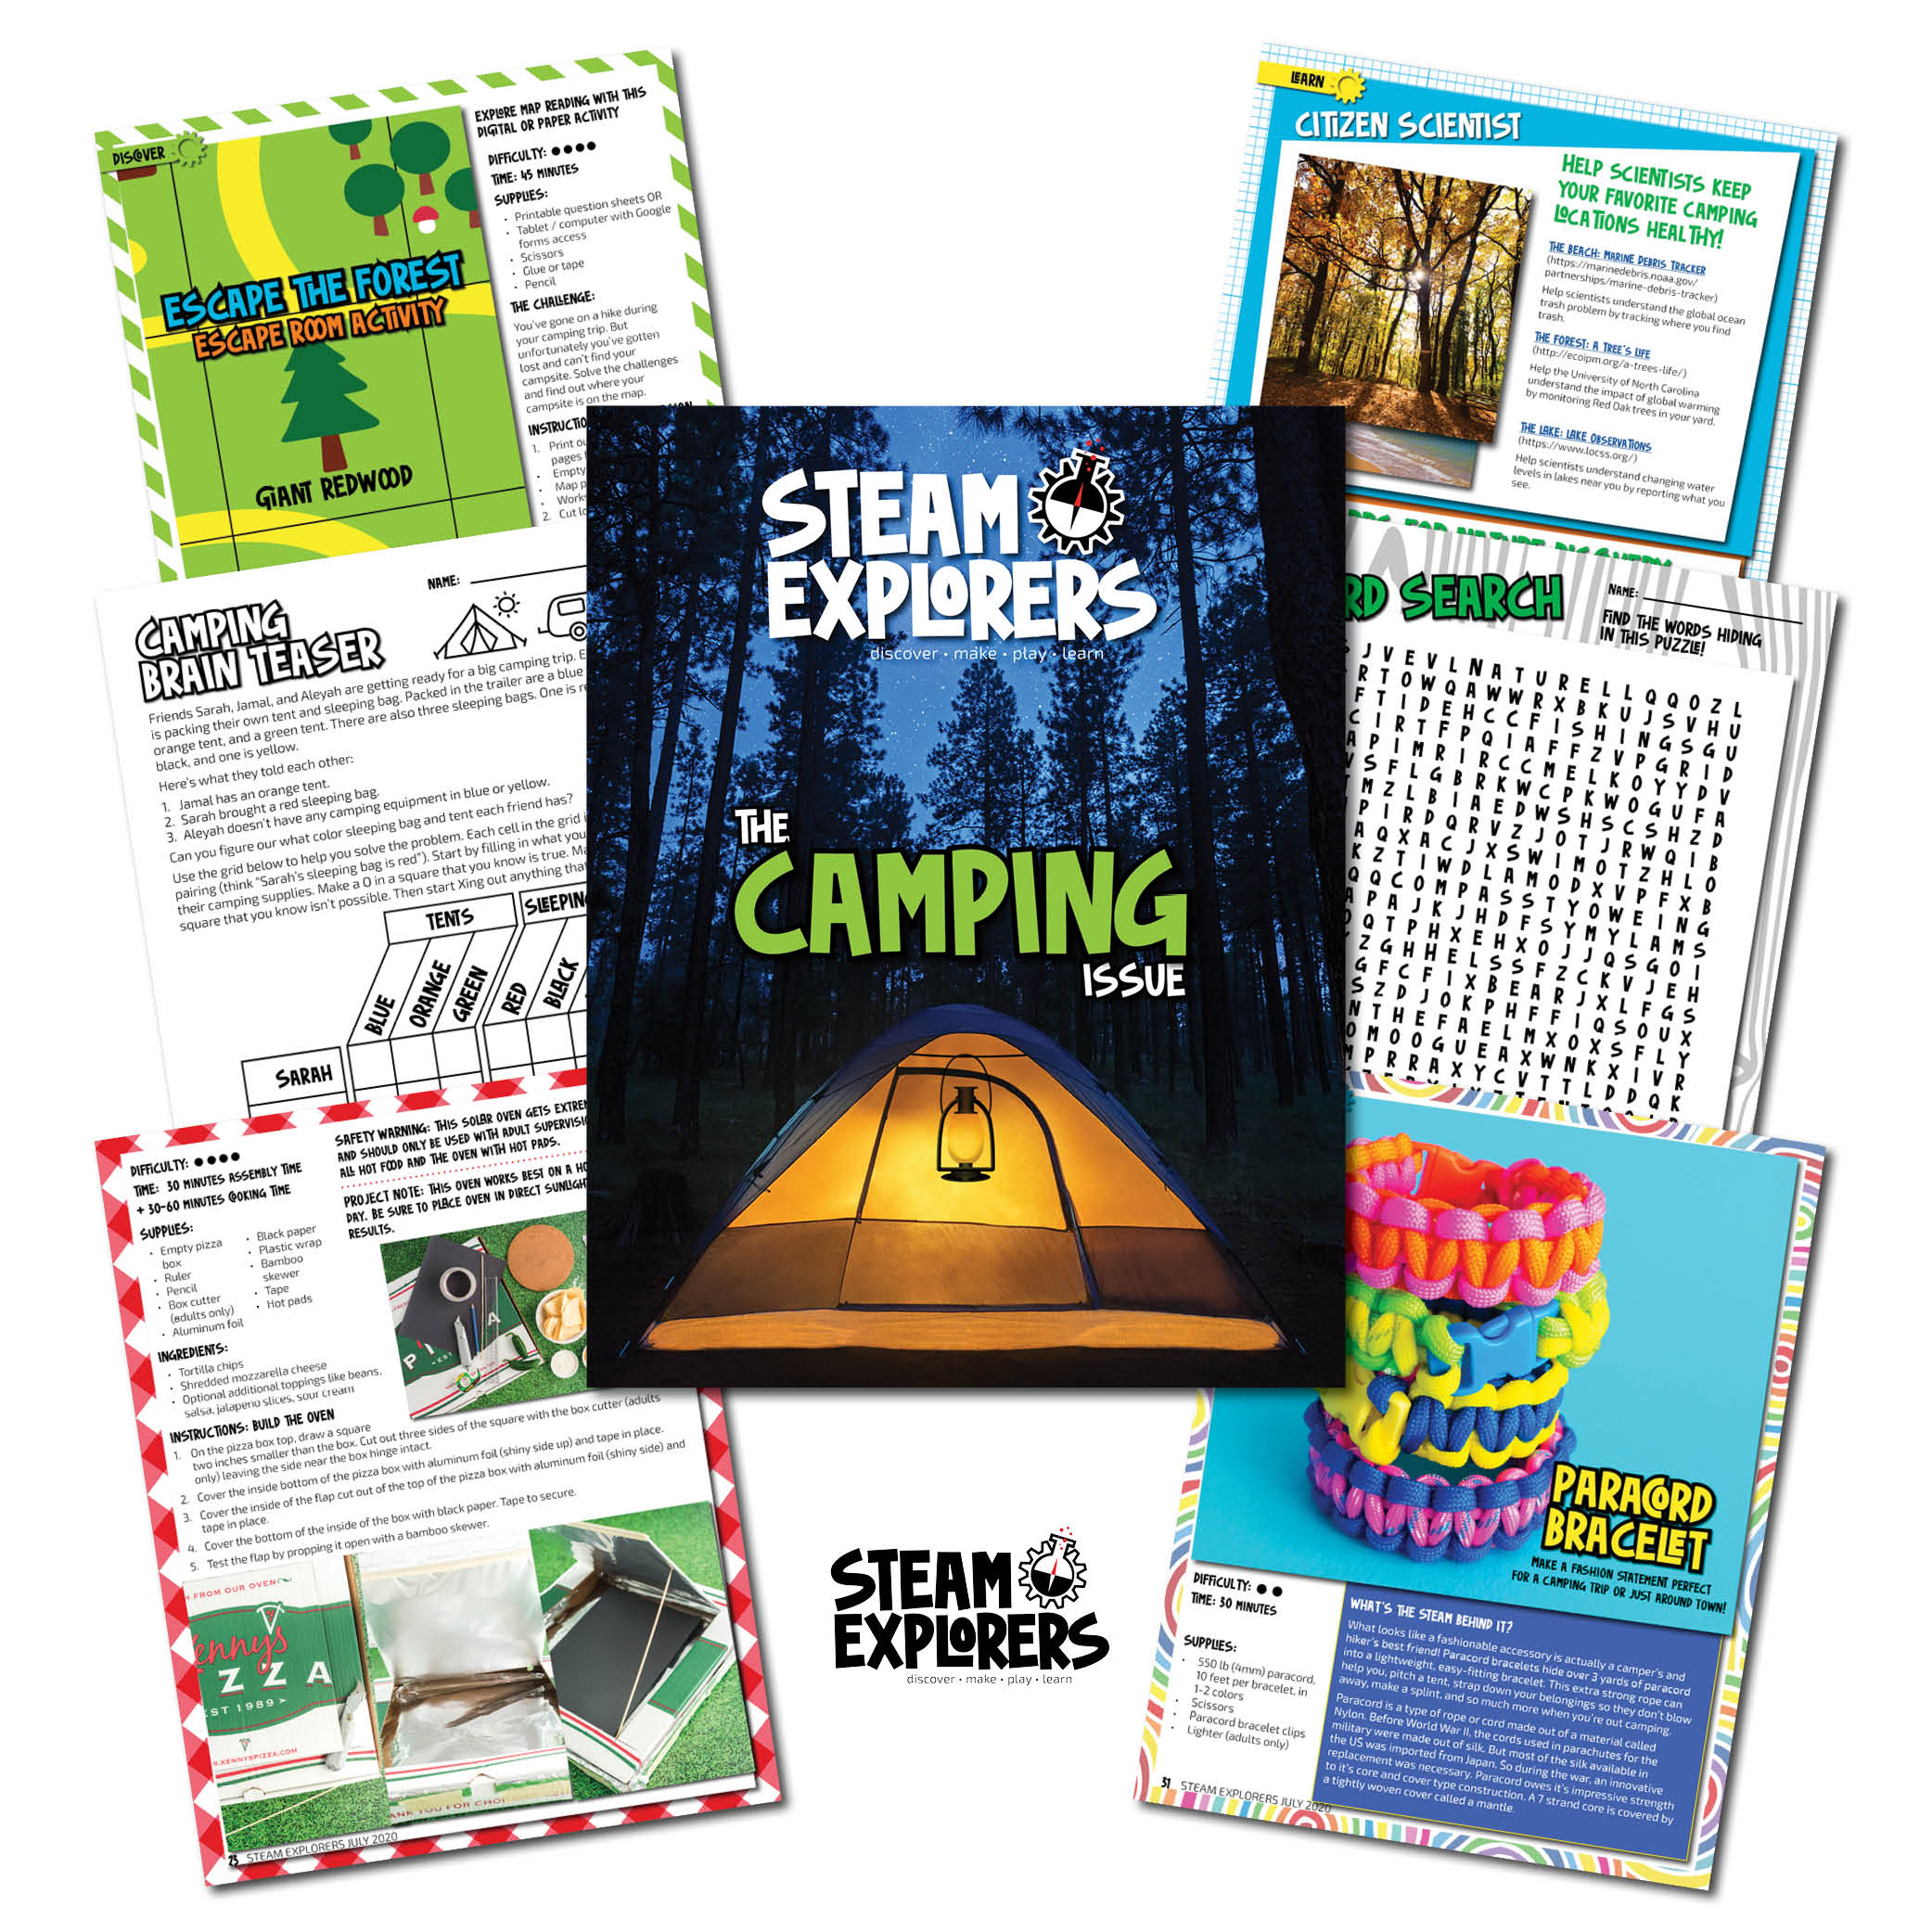 STEAM Explorers - Camping - Page Collage